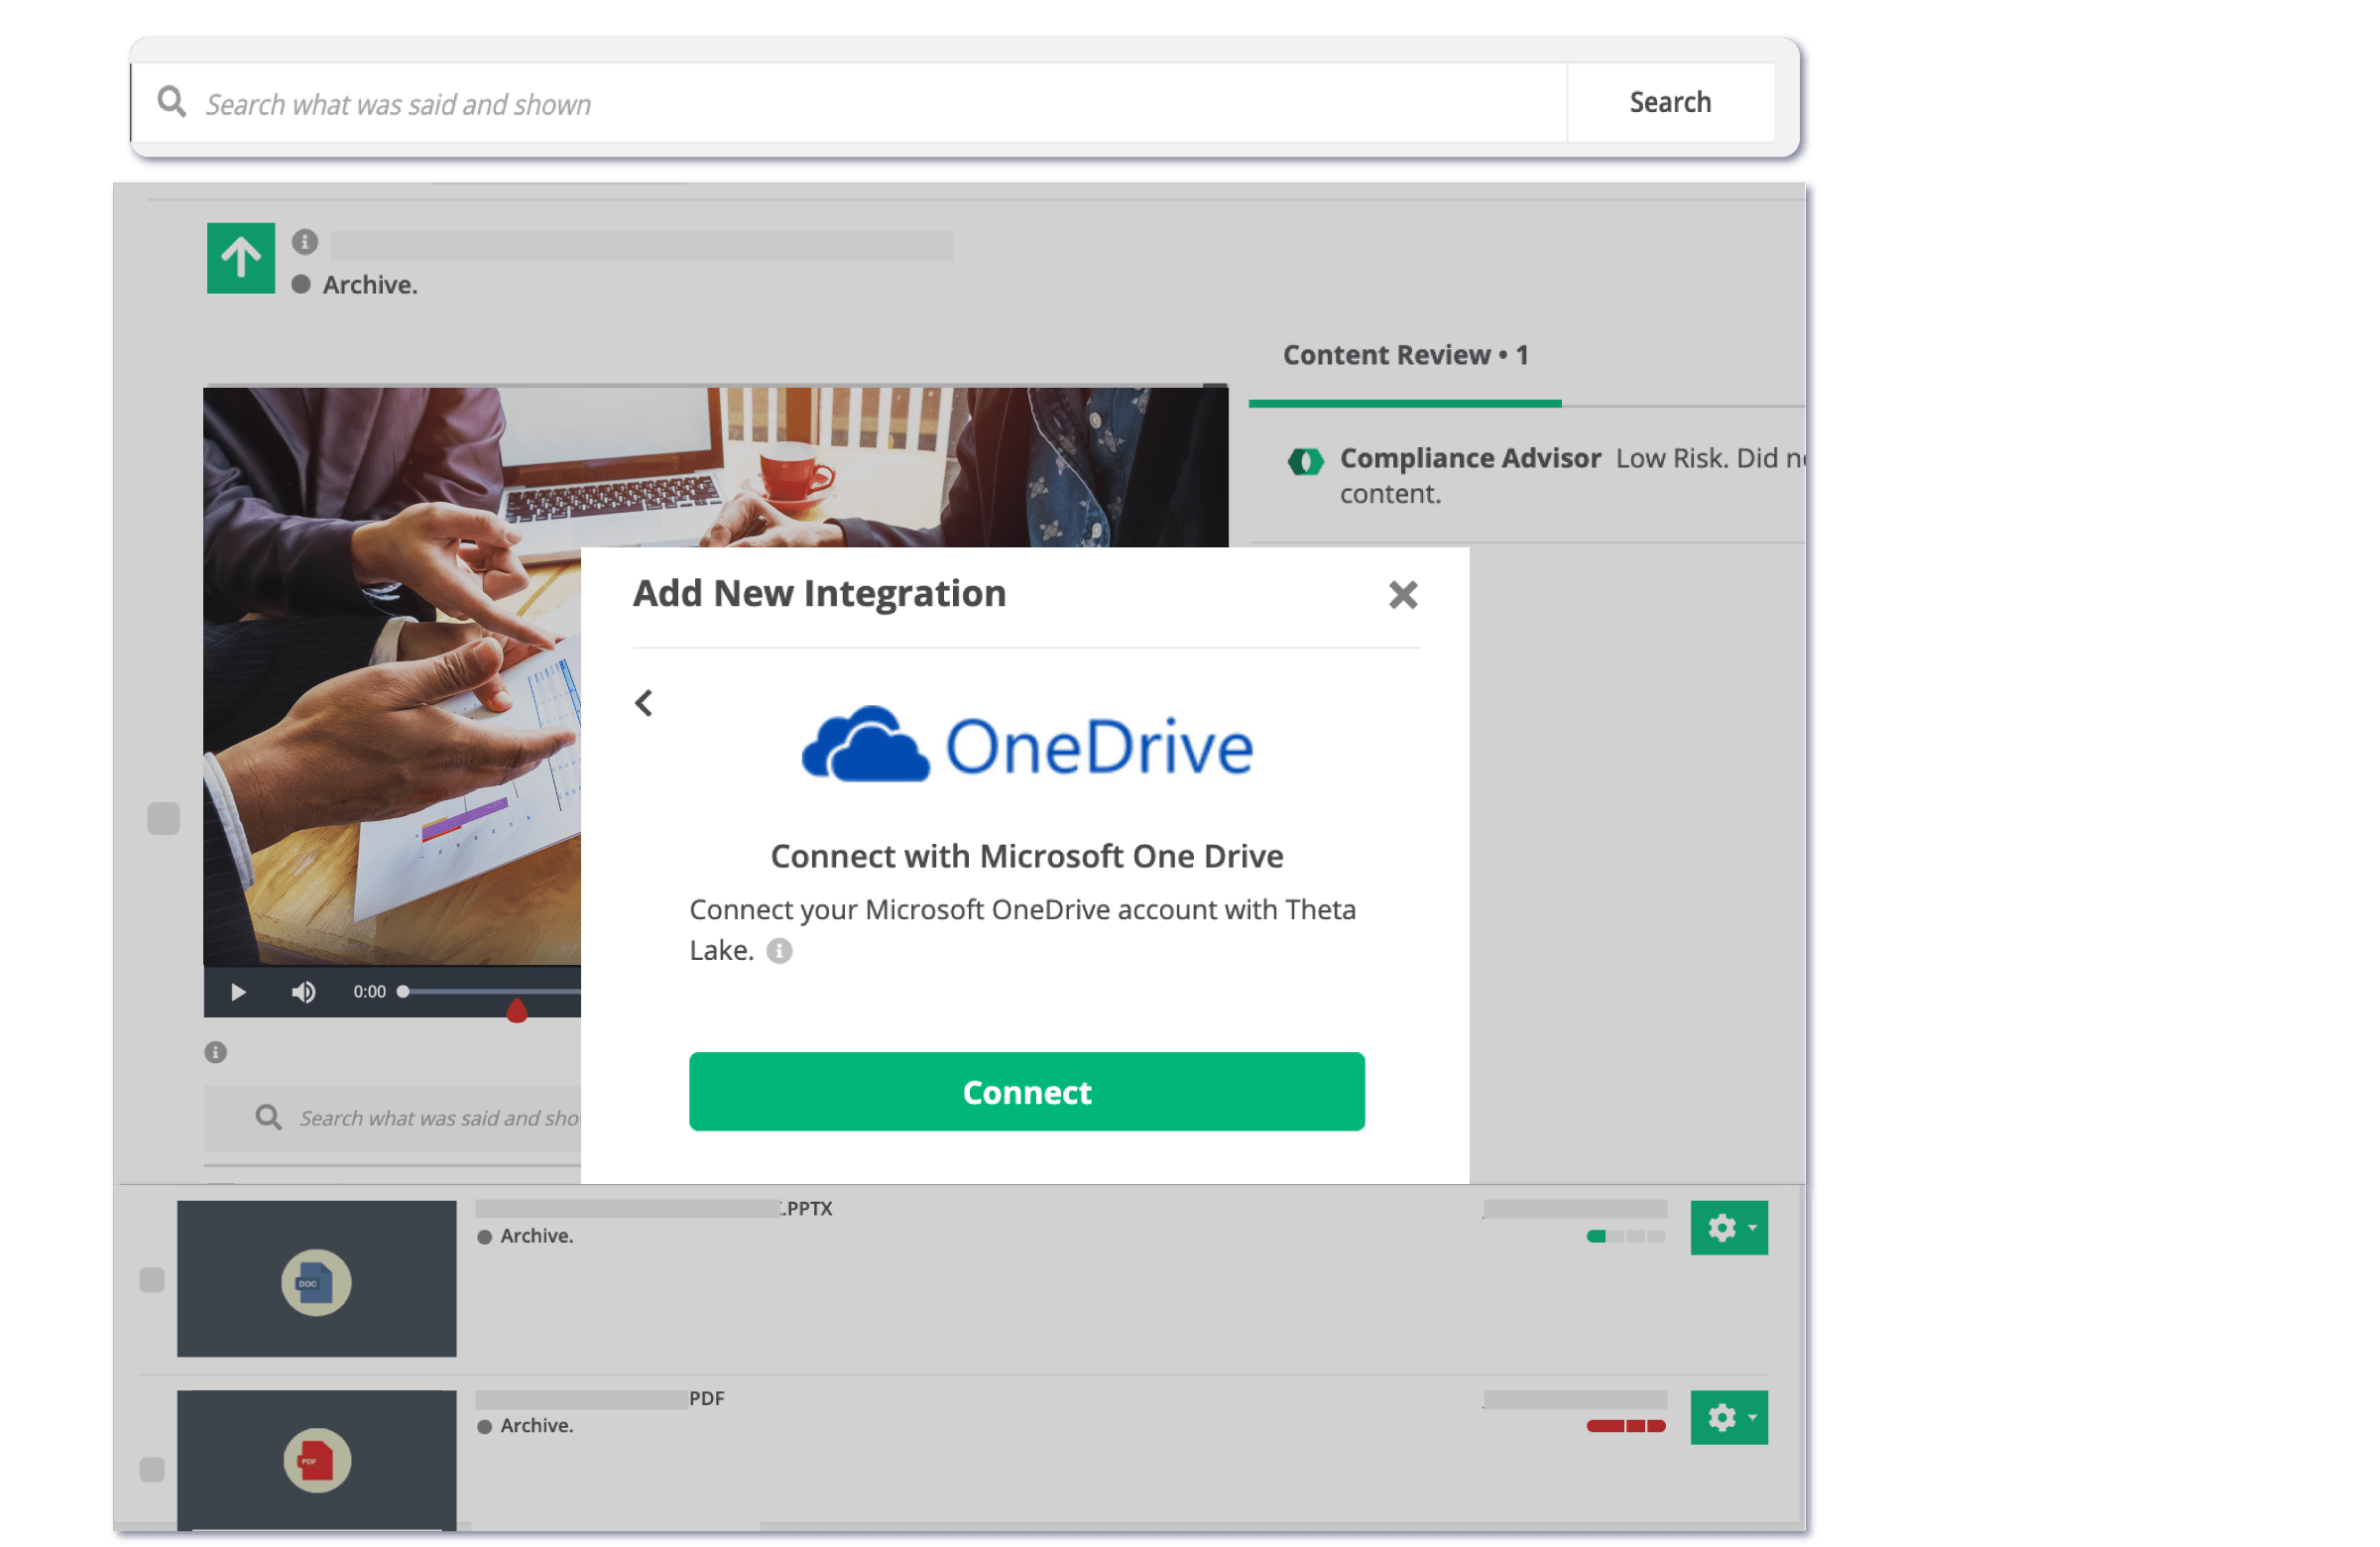 onedrive videoreview@2x min